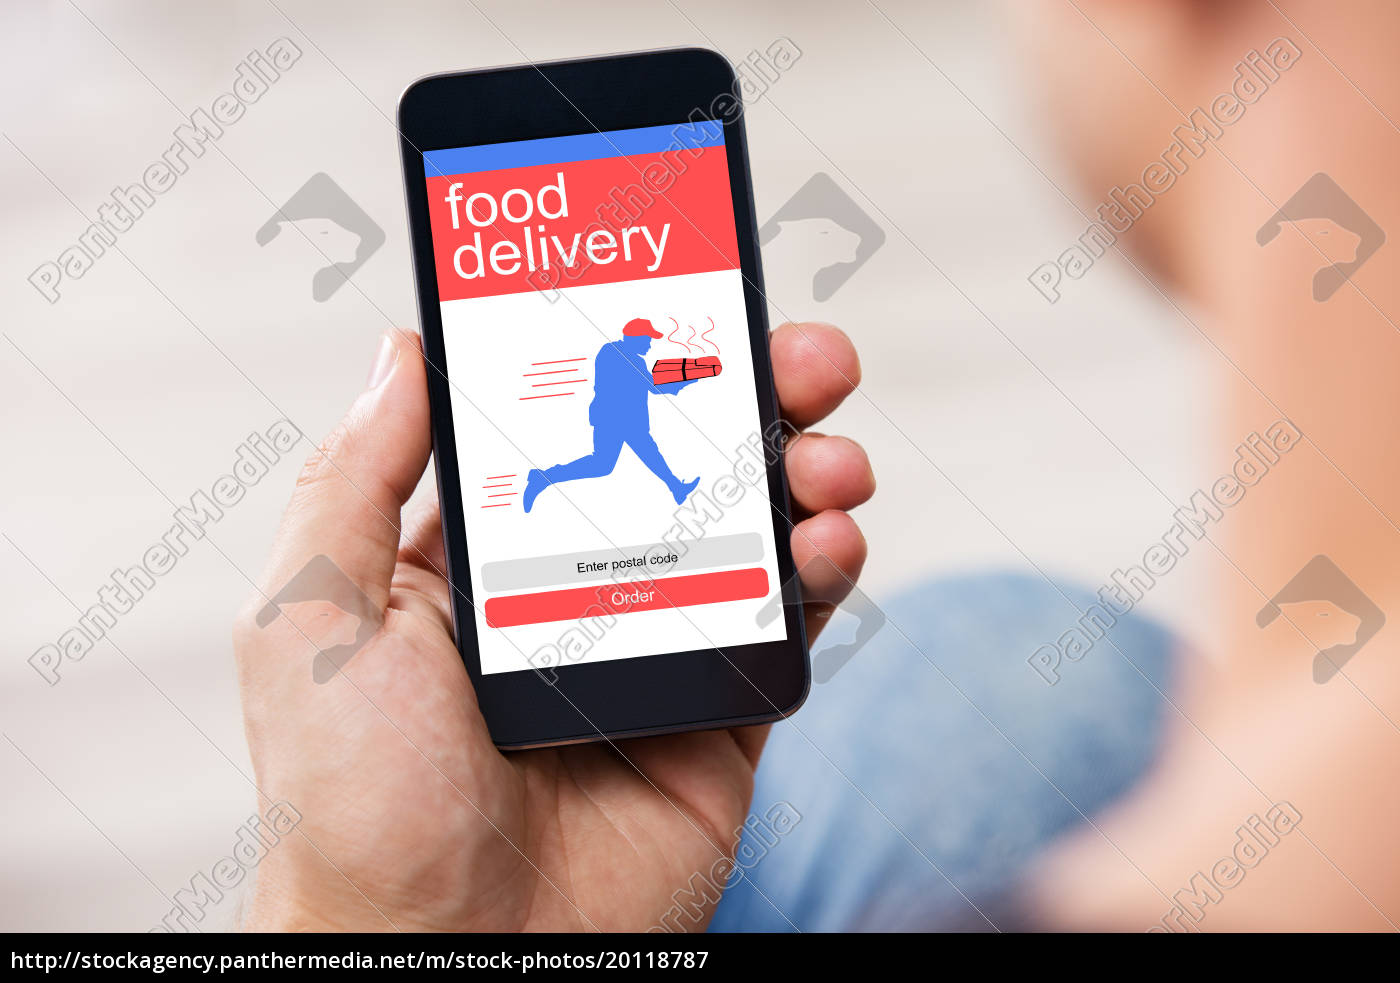 smart, phone, showing, food, delivery, application - 20118787